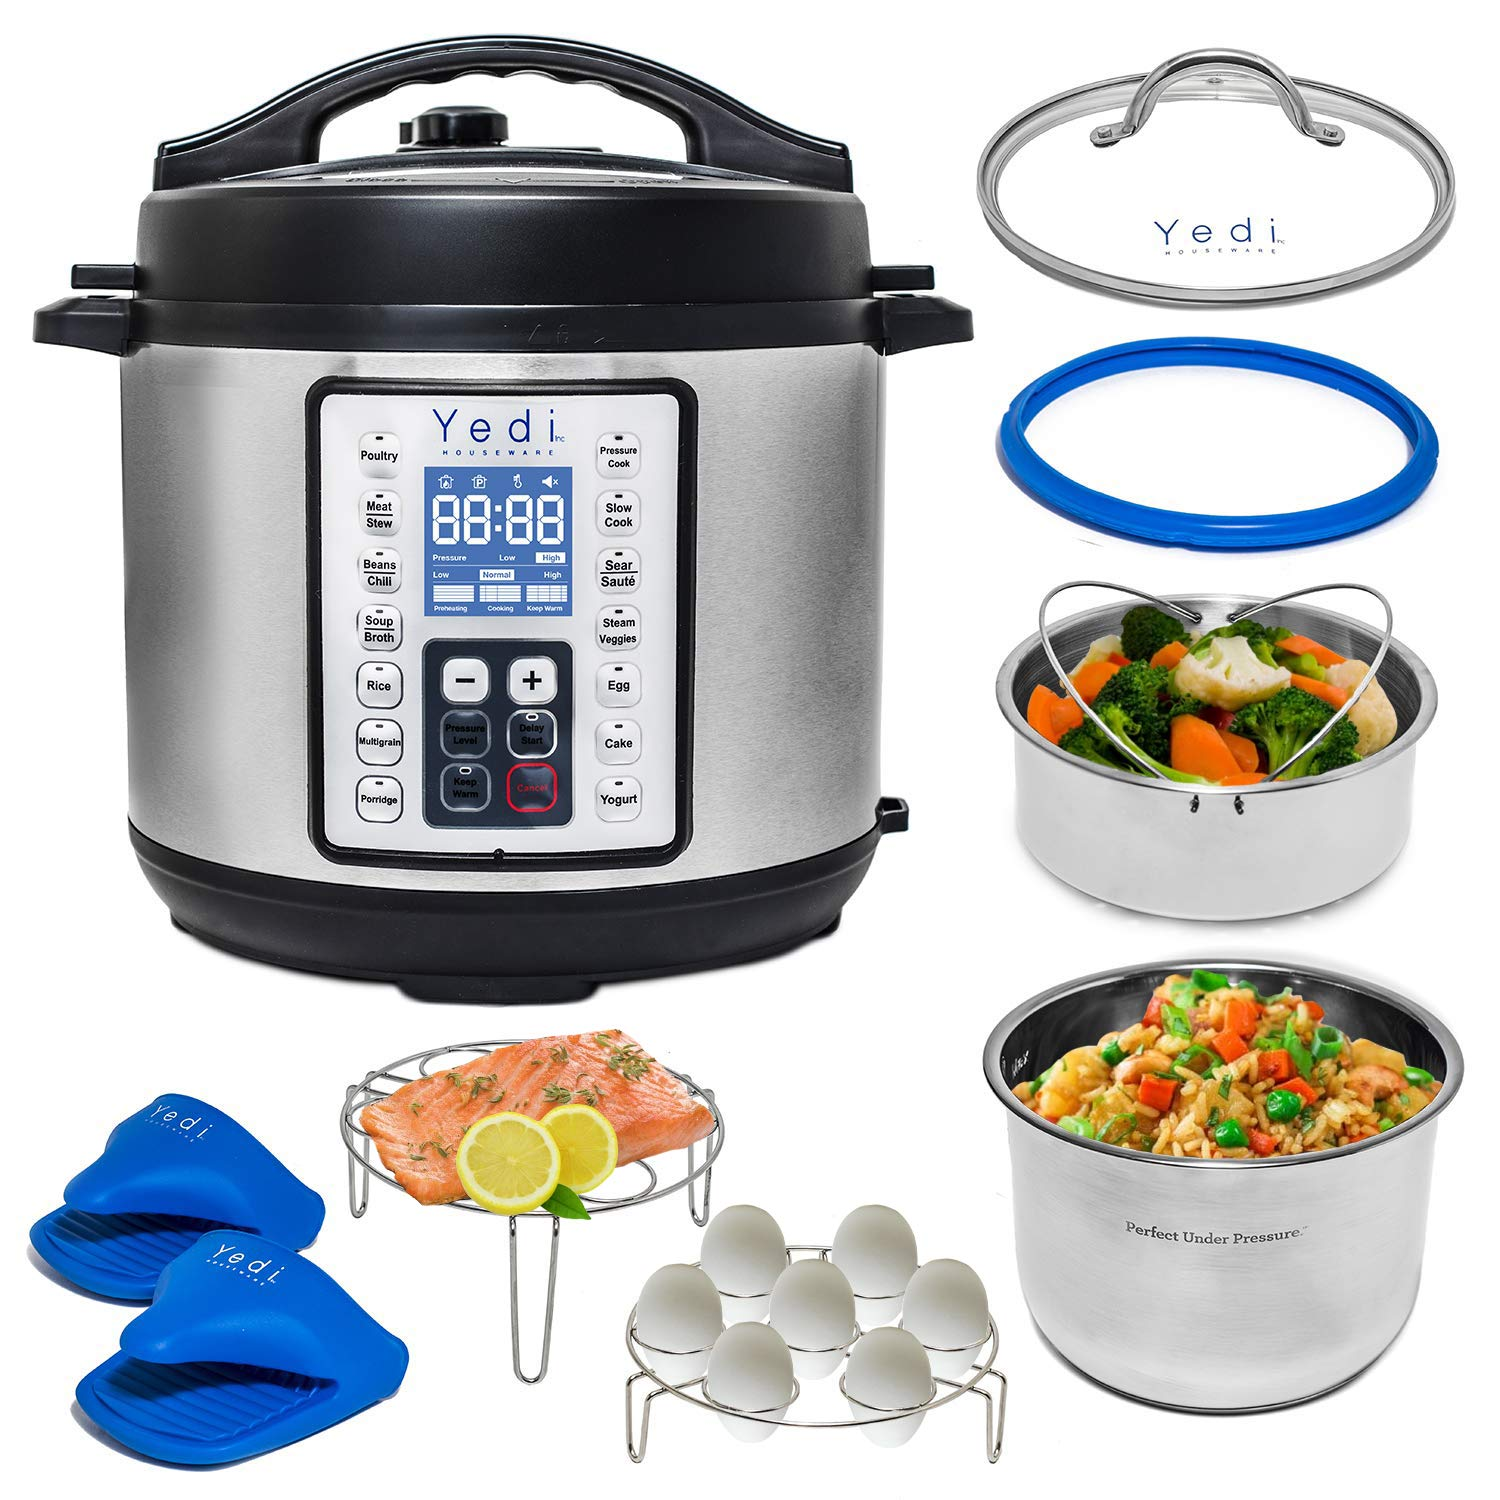 Yedi 9-in-1 Total Package Instant Programmable Pressure Cooker, Slow Cooker, Rice Cooker, Yogurt, Sauté, Steamer. Deluxe Accessory Kit, Recipe Book, Cheat Sheets, 2-Year Warranty, 6 Quart. by Yedi Houseware